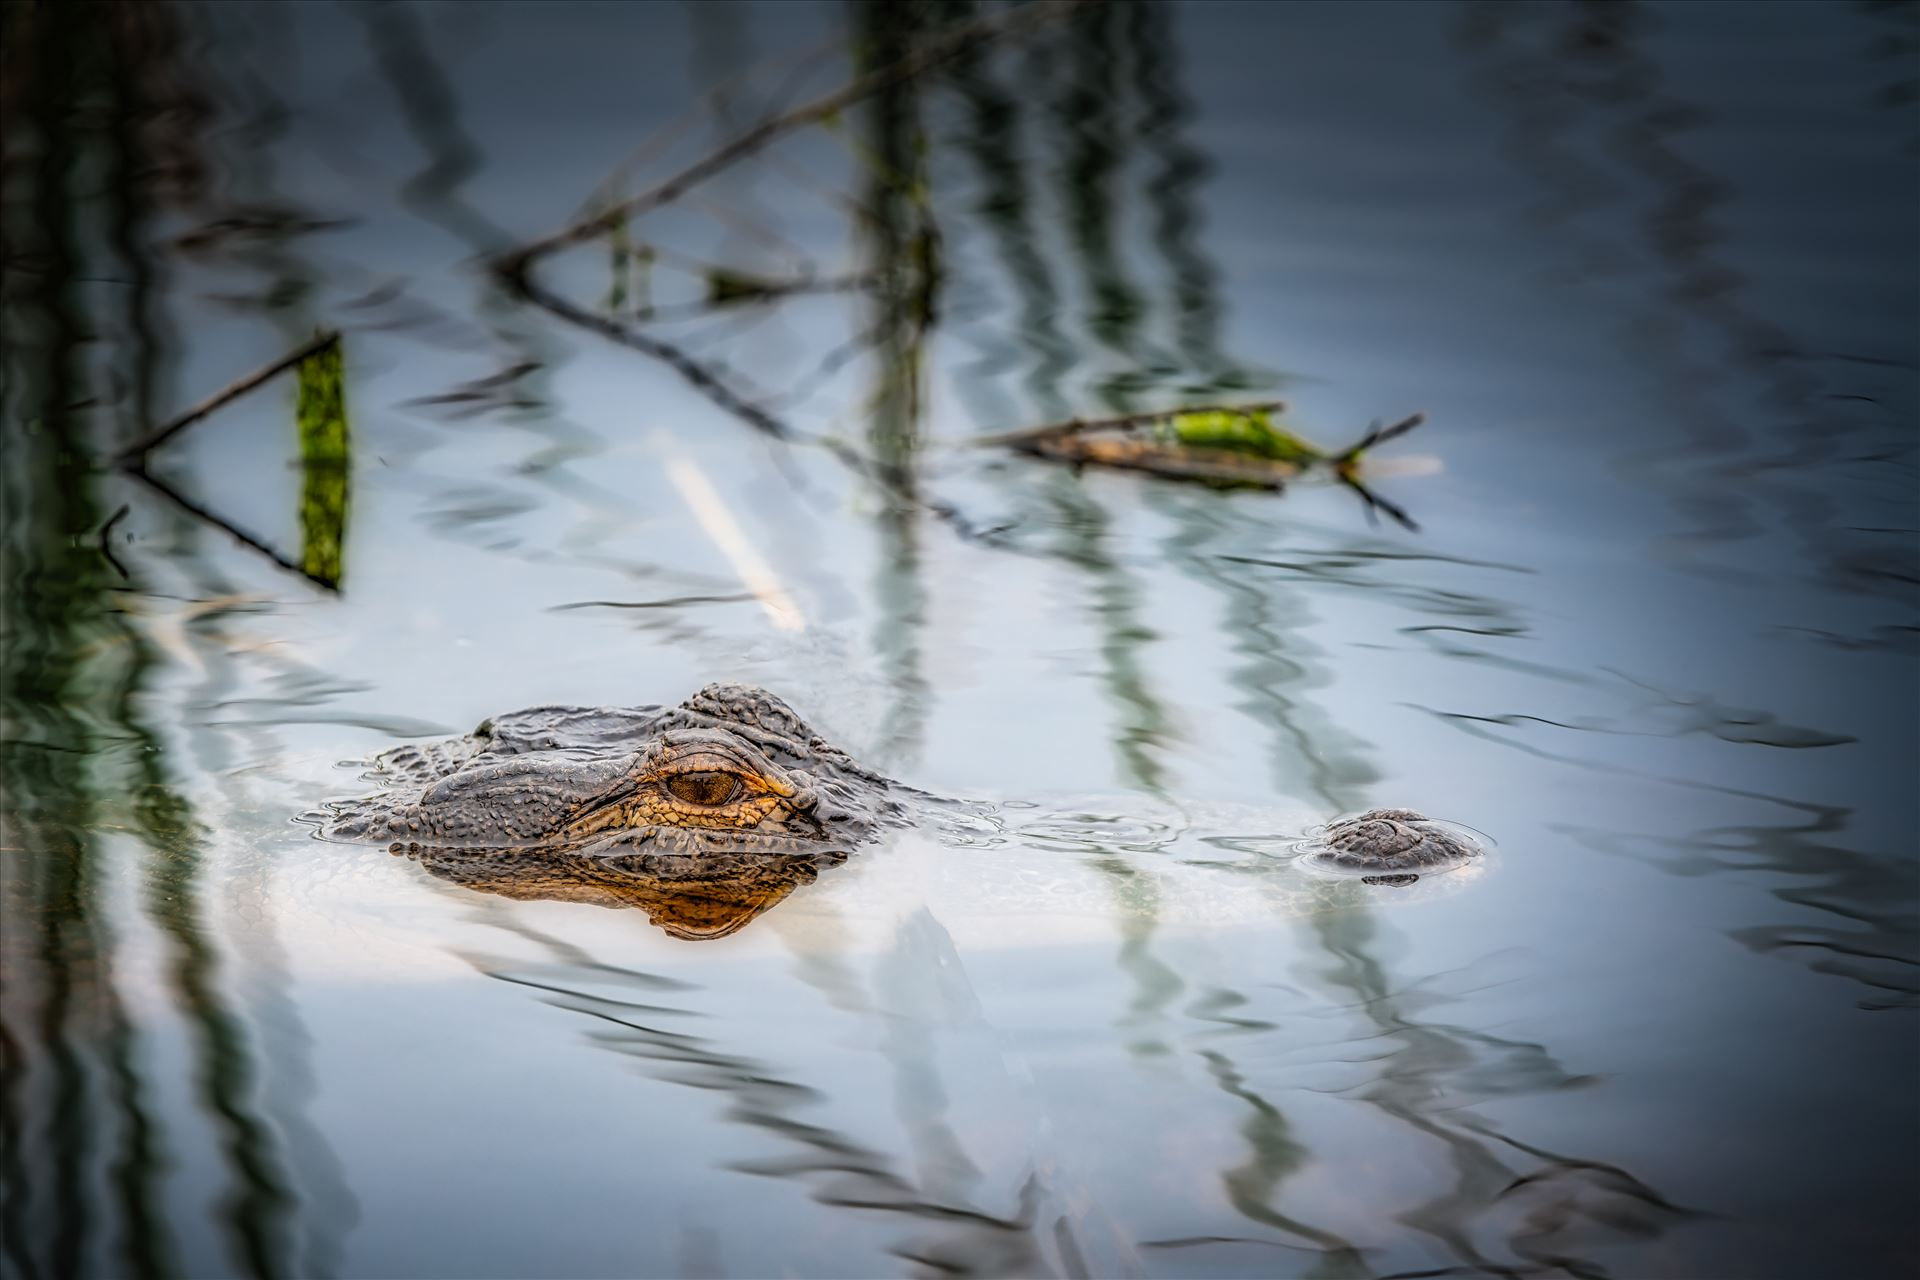 Alligators and crocodiles - aggressive, alligator, american, animal, aquatic, beautiful, carnivore, closeup, coldblooded, conservation, crocodile, danger, dangerous, deadly, eye, ferocious, florida, head, hunter, jaws, large, marsh, mouth, muscular, nature, outdoors, park, portrait,